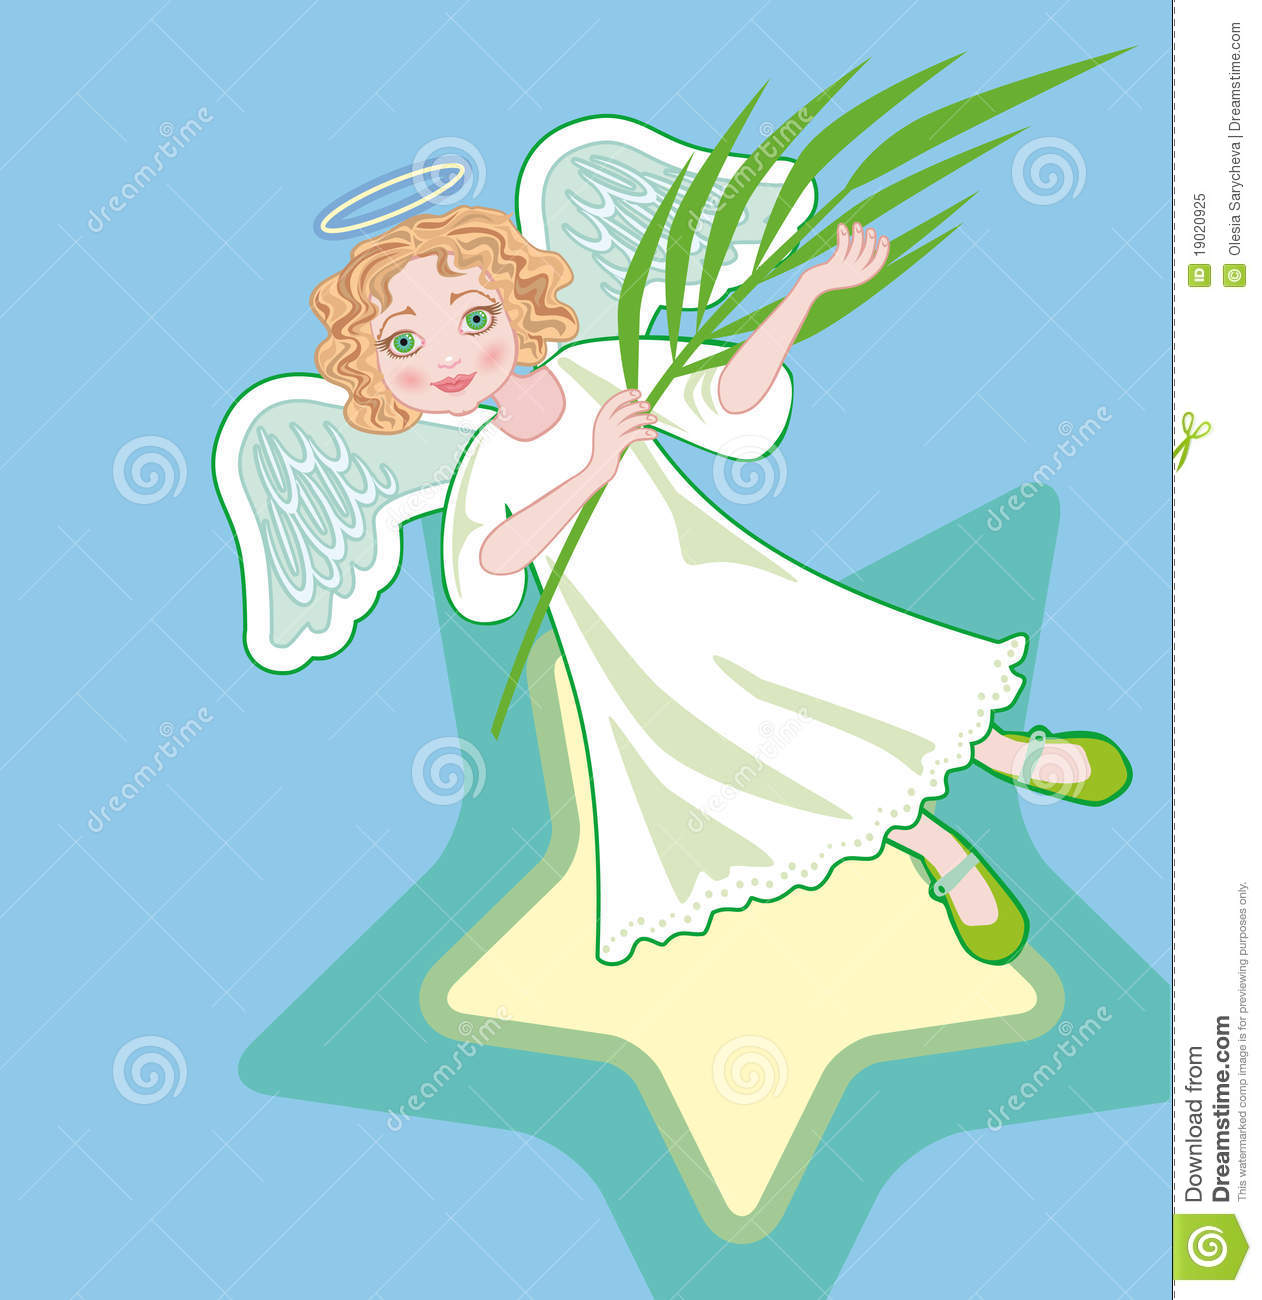 http://thumbs.dreamstime.com/z/palm-sunday-19020925.jpg